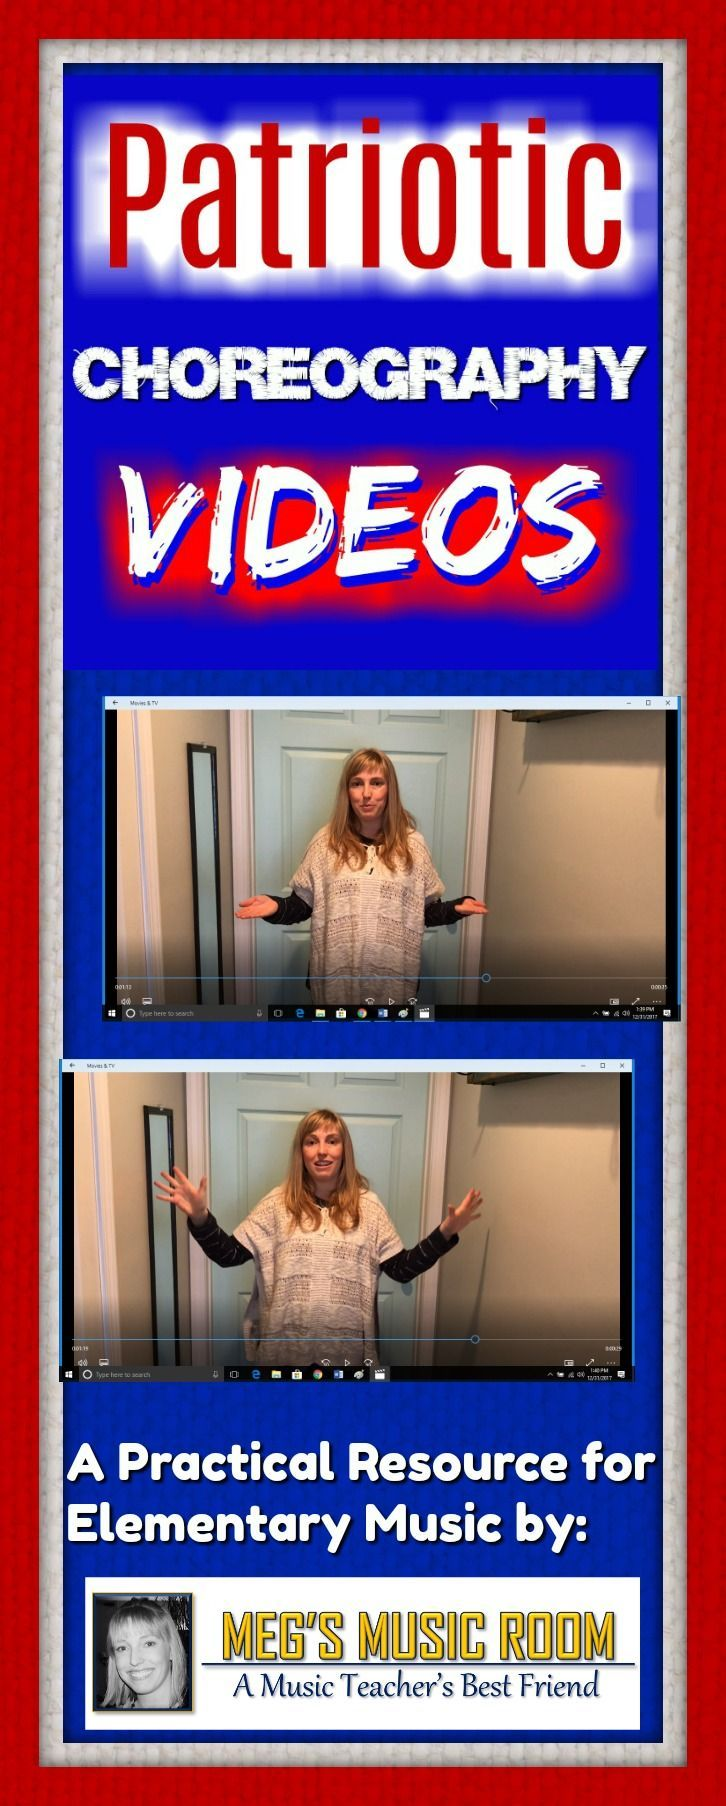 "Easy choreography for 3 popular patriotic songs - ""America (My Country 'Tis of Thee),"" ""America, the Beautiful"" and ""You're a Grand Old Flag."" Great for elementary music class for programs and patriotic celebrations. #MusicTeacher #musicteachers #elementarymusic #ElementaryMusicTeacher #dance #choreographer"